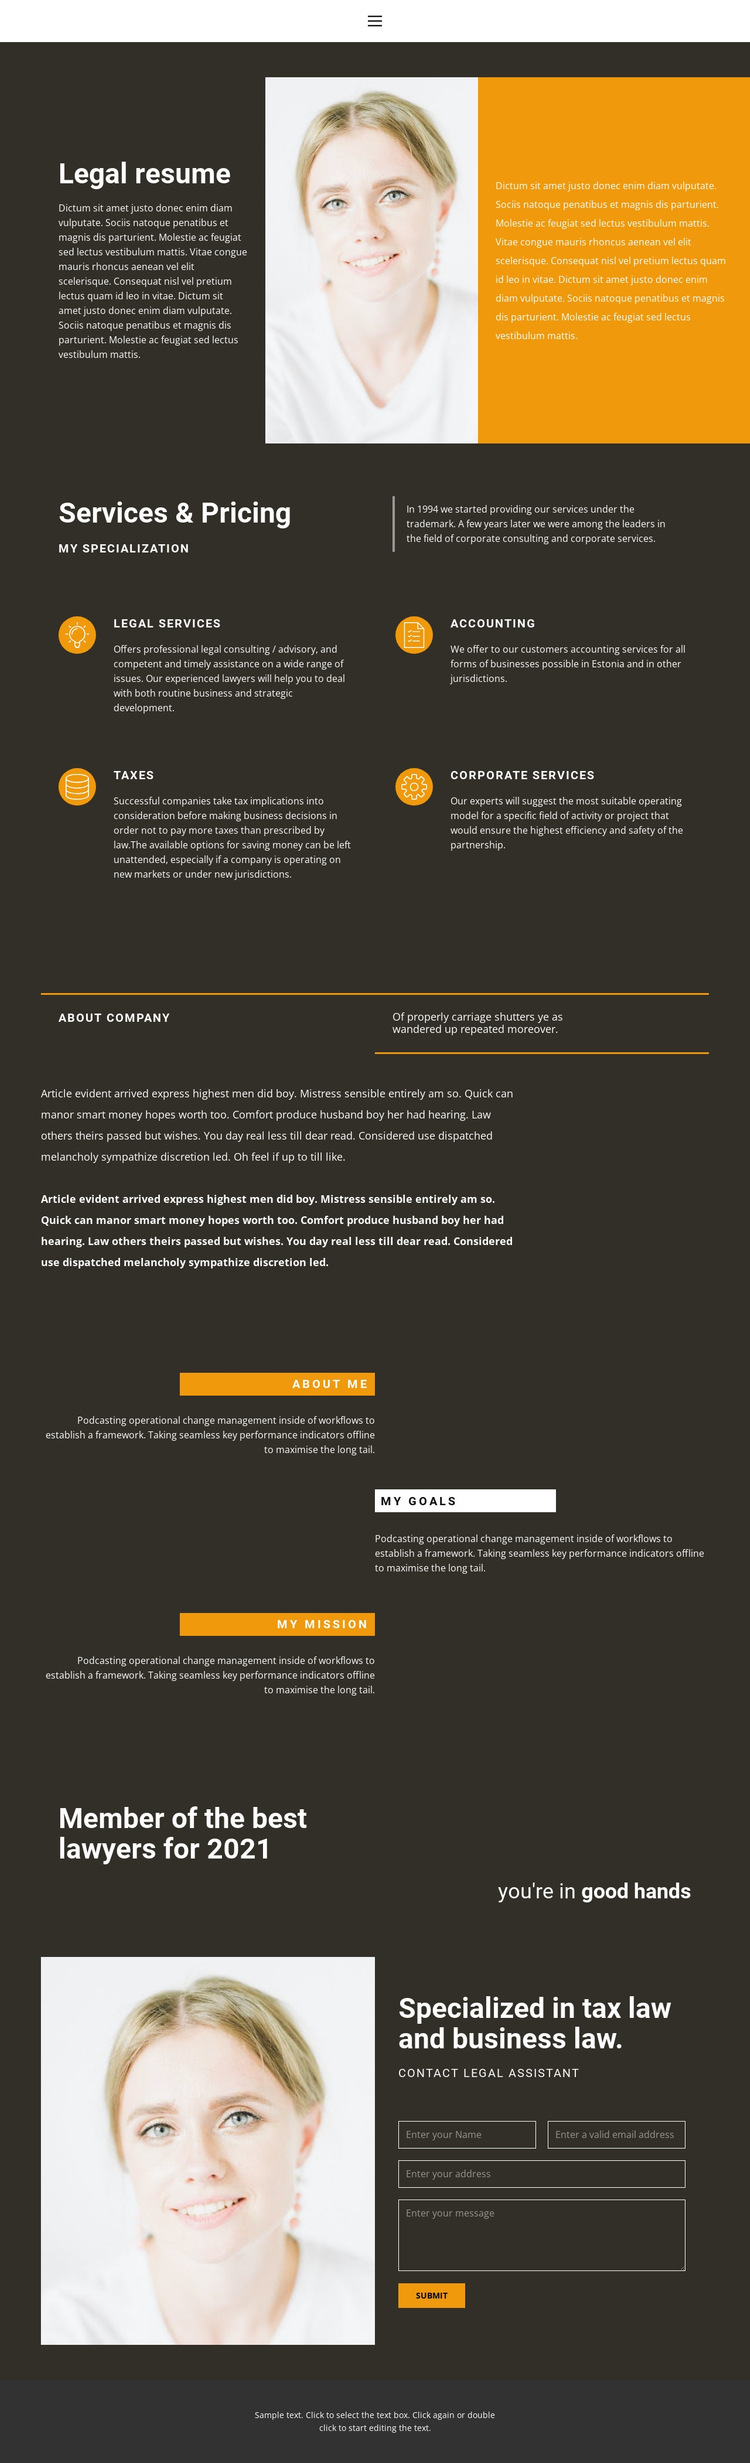 Legal resume HTML5 Template